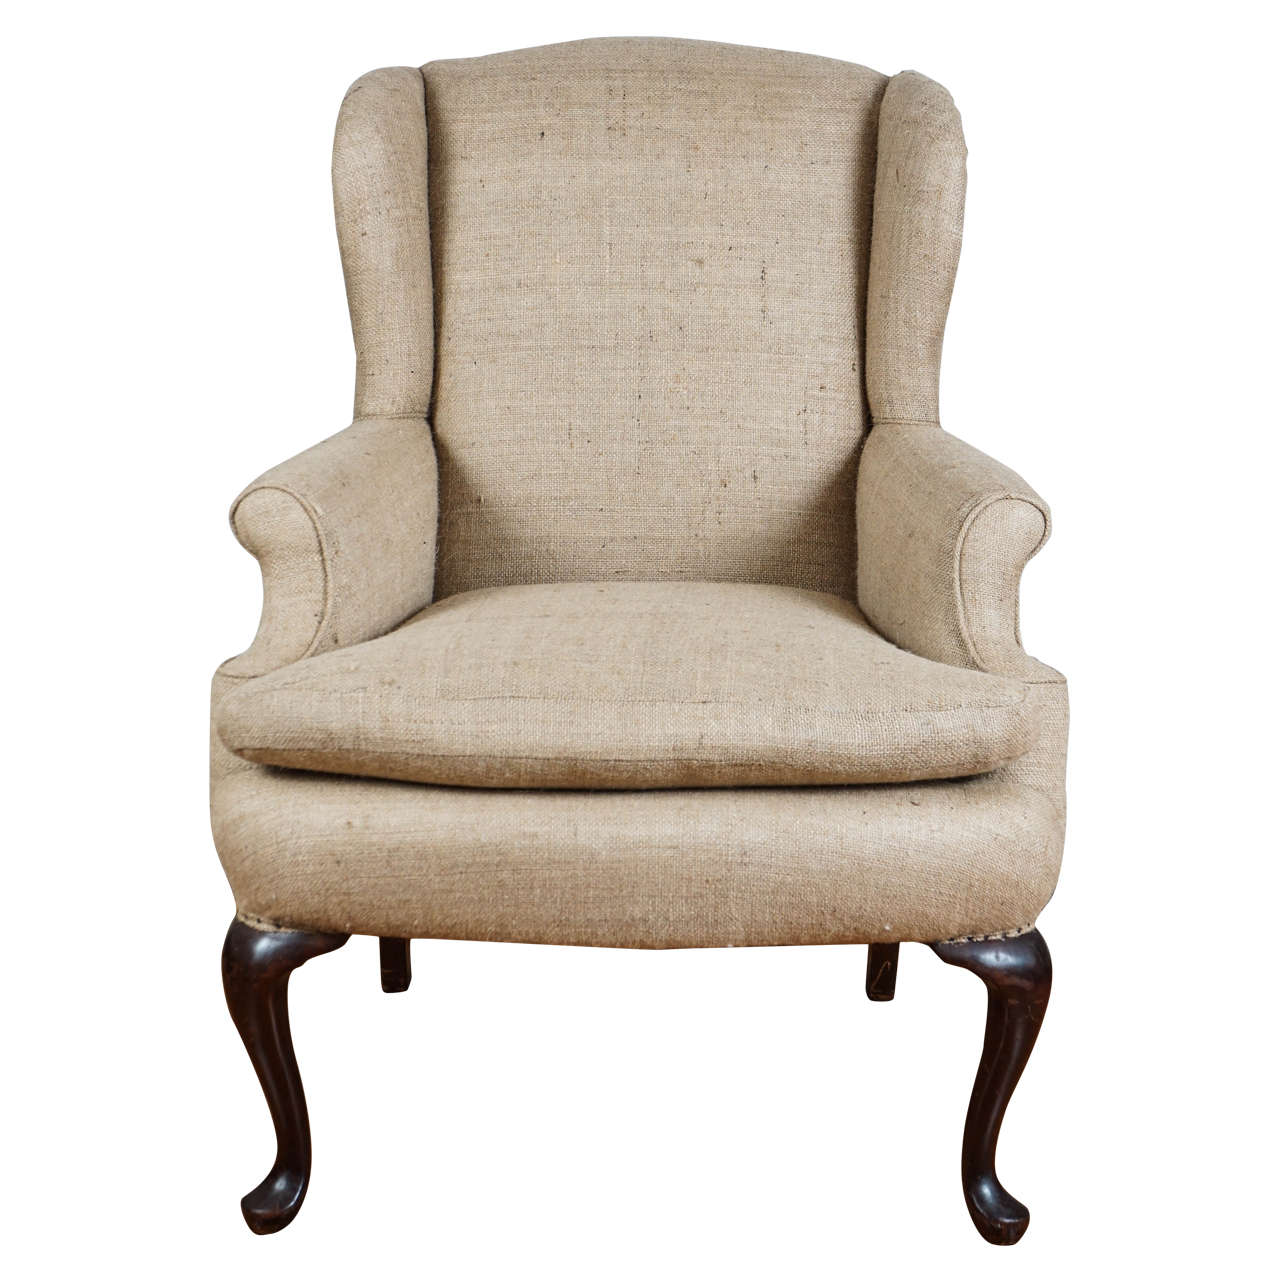 Genial Burlap Wingback Chair For Sale